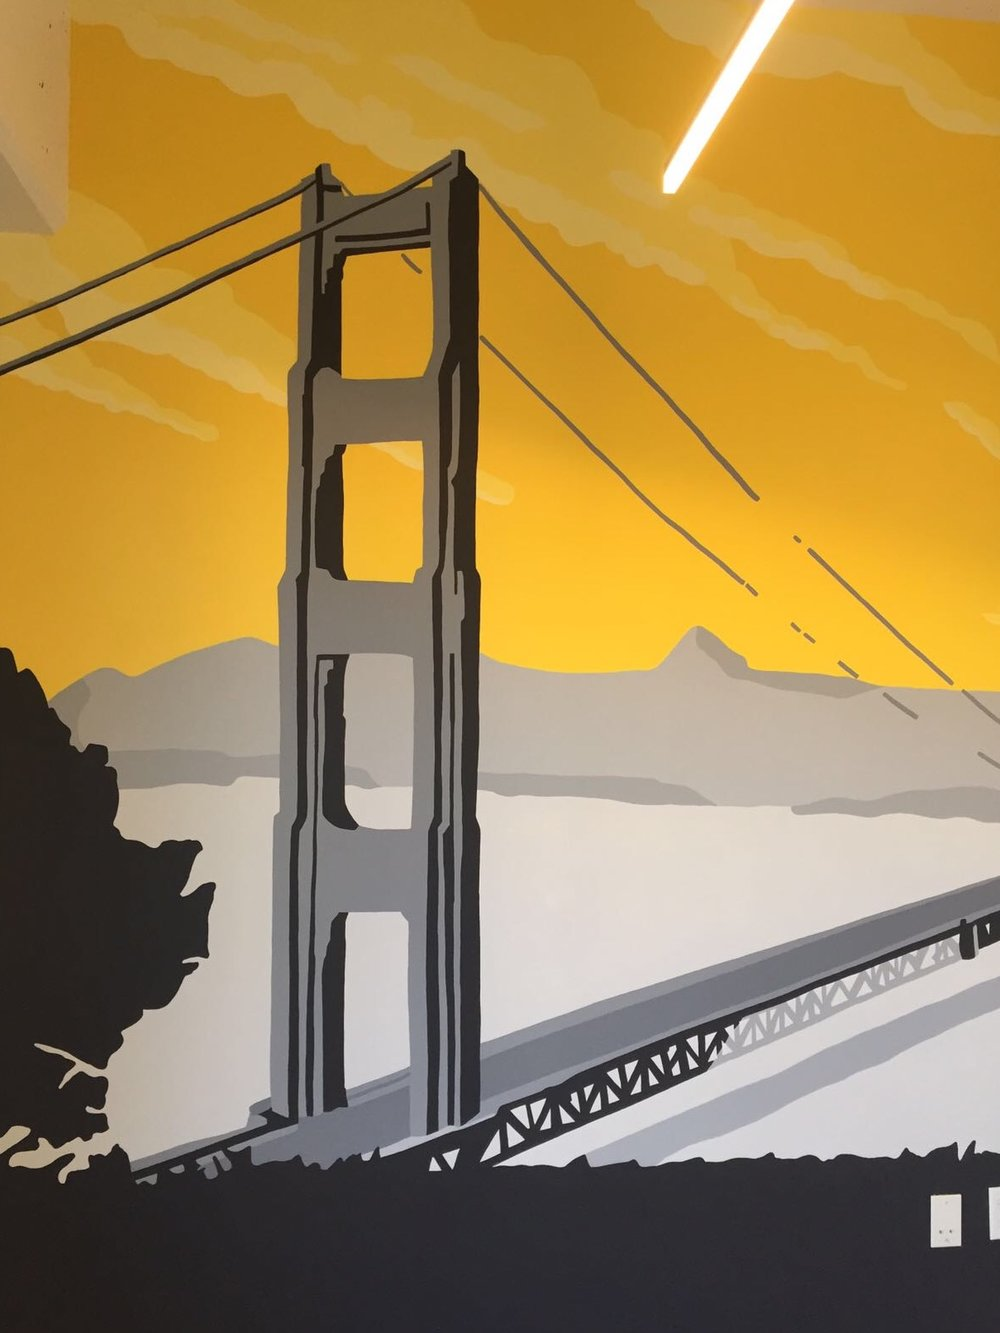 Office-commercial-mural-san-francisco-essex-wall-and-wall-mural-company_002.jpg